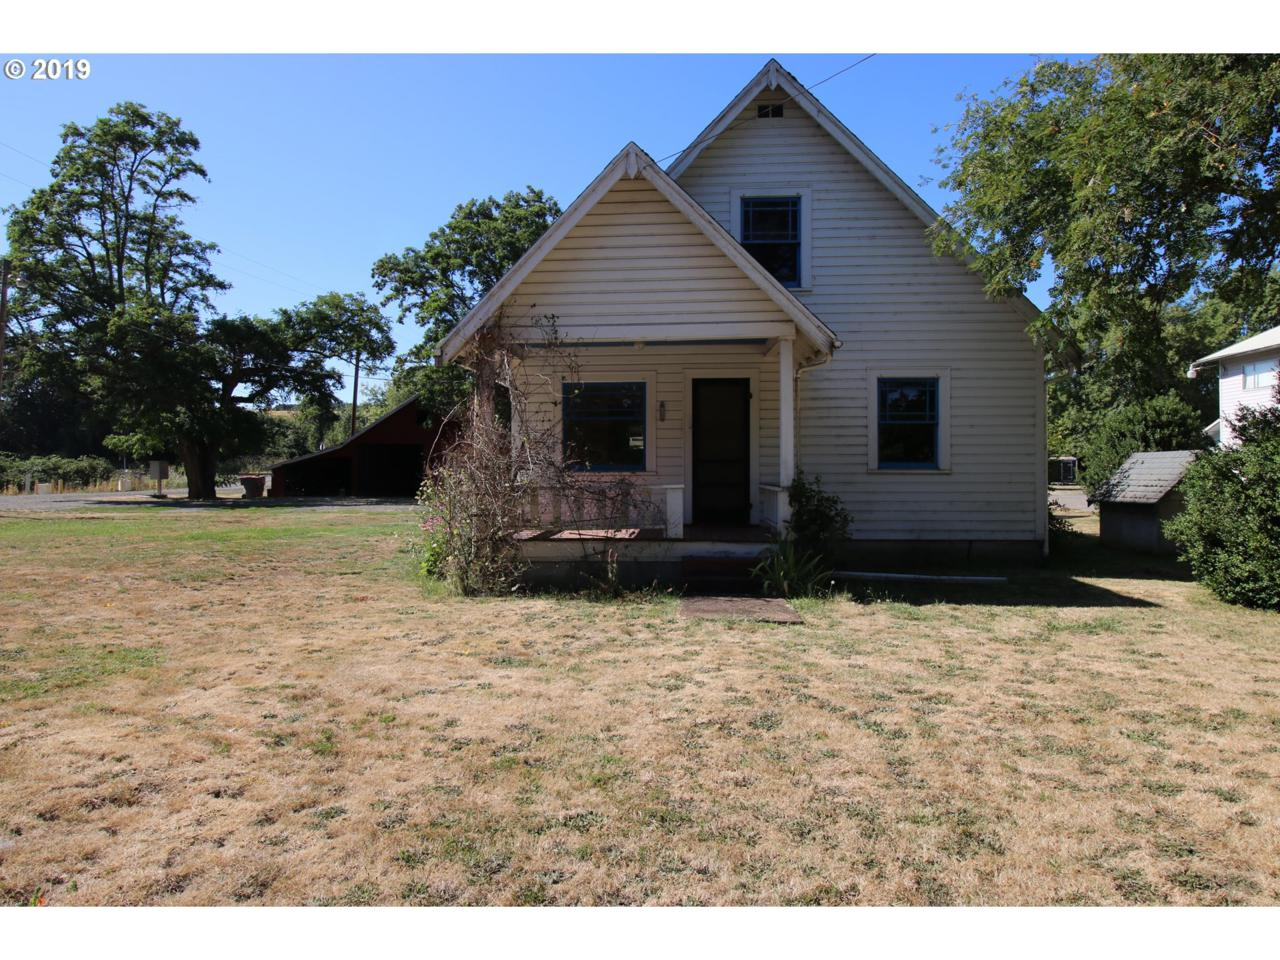 32200 West Vly - Photo 1